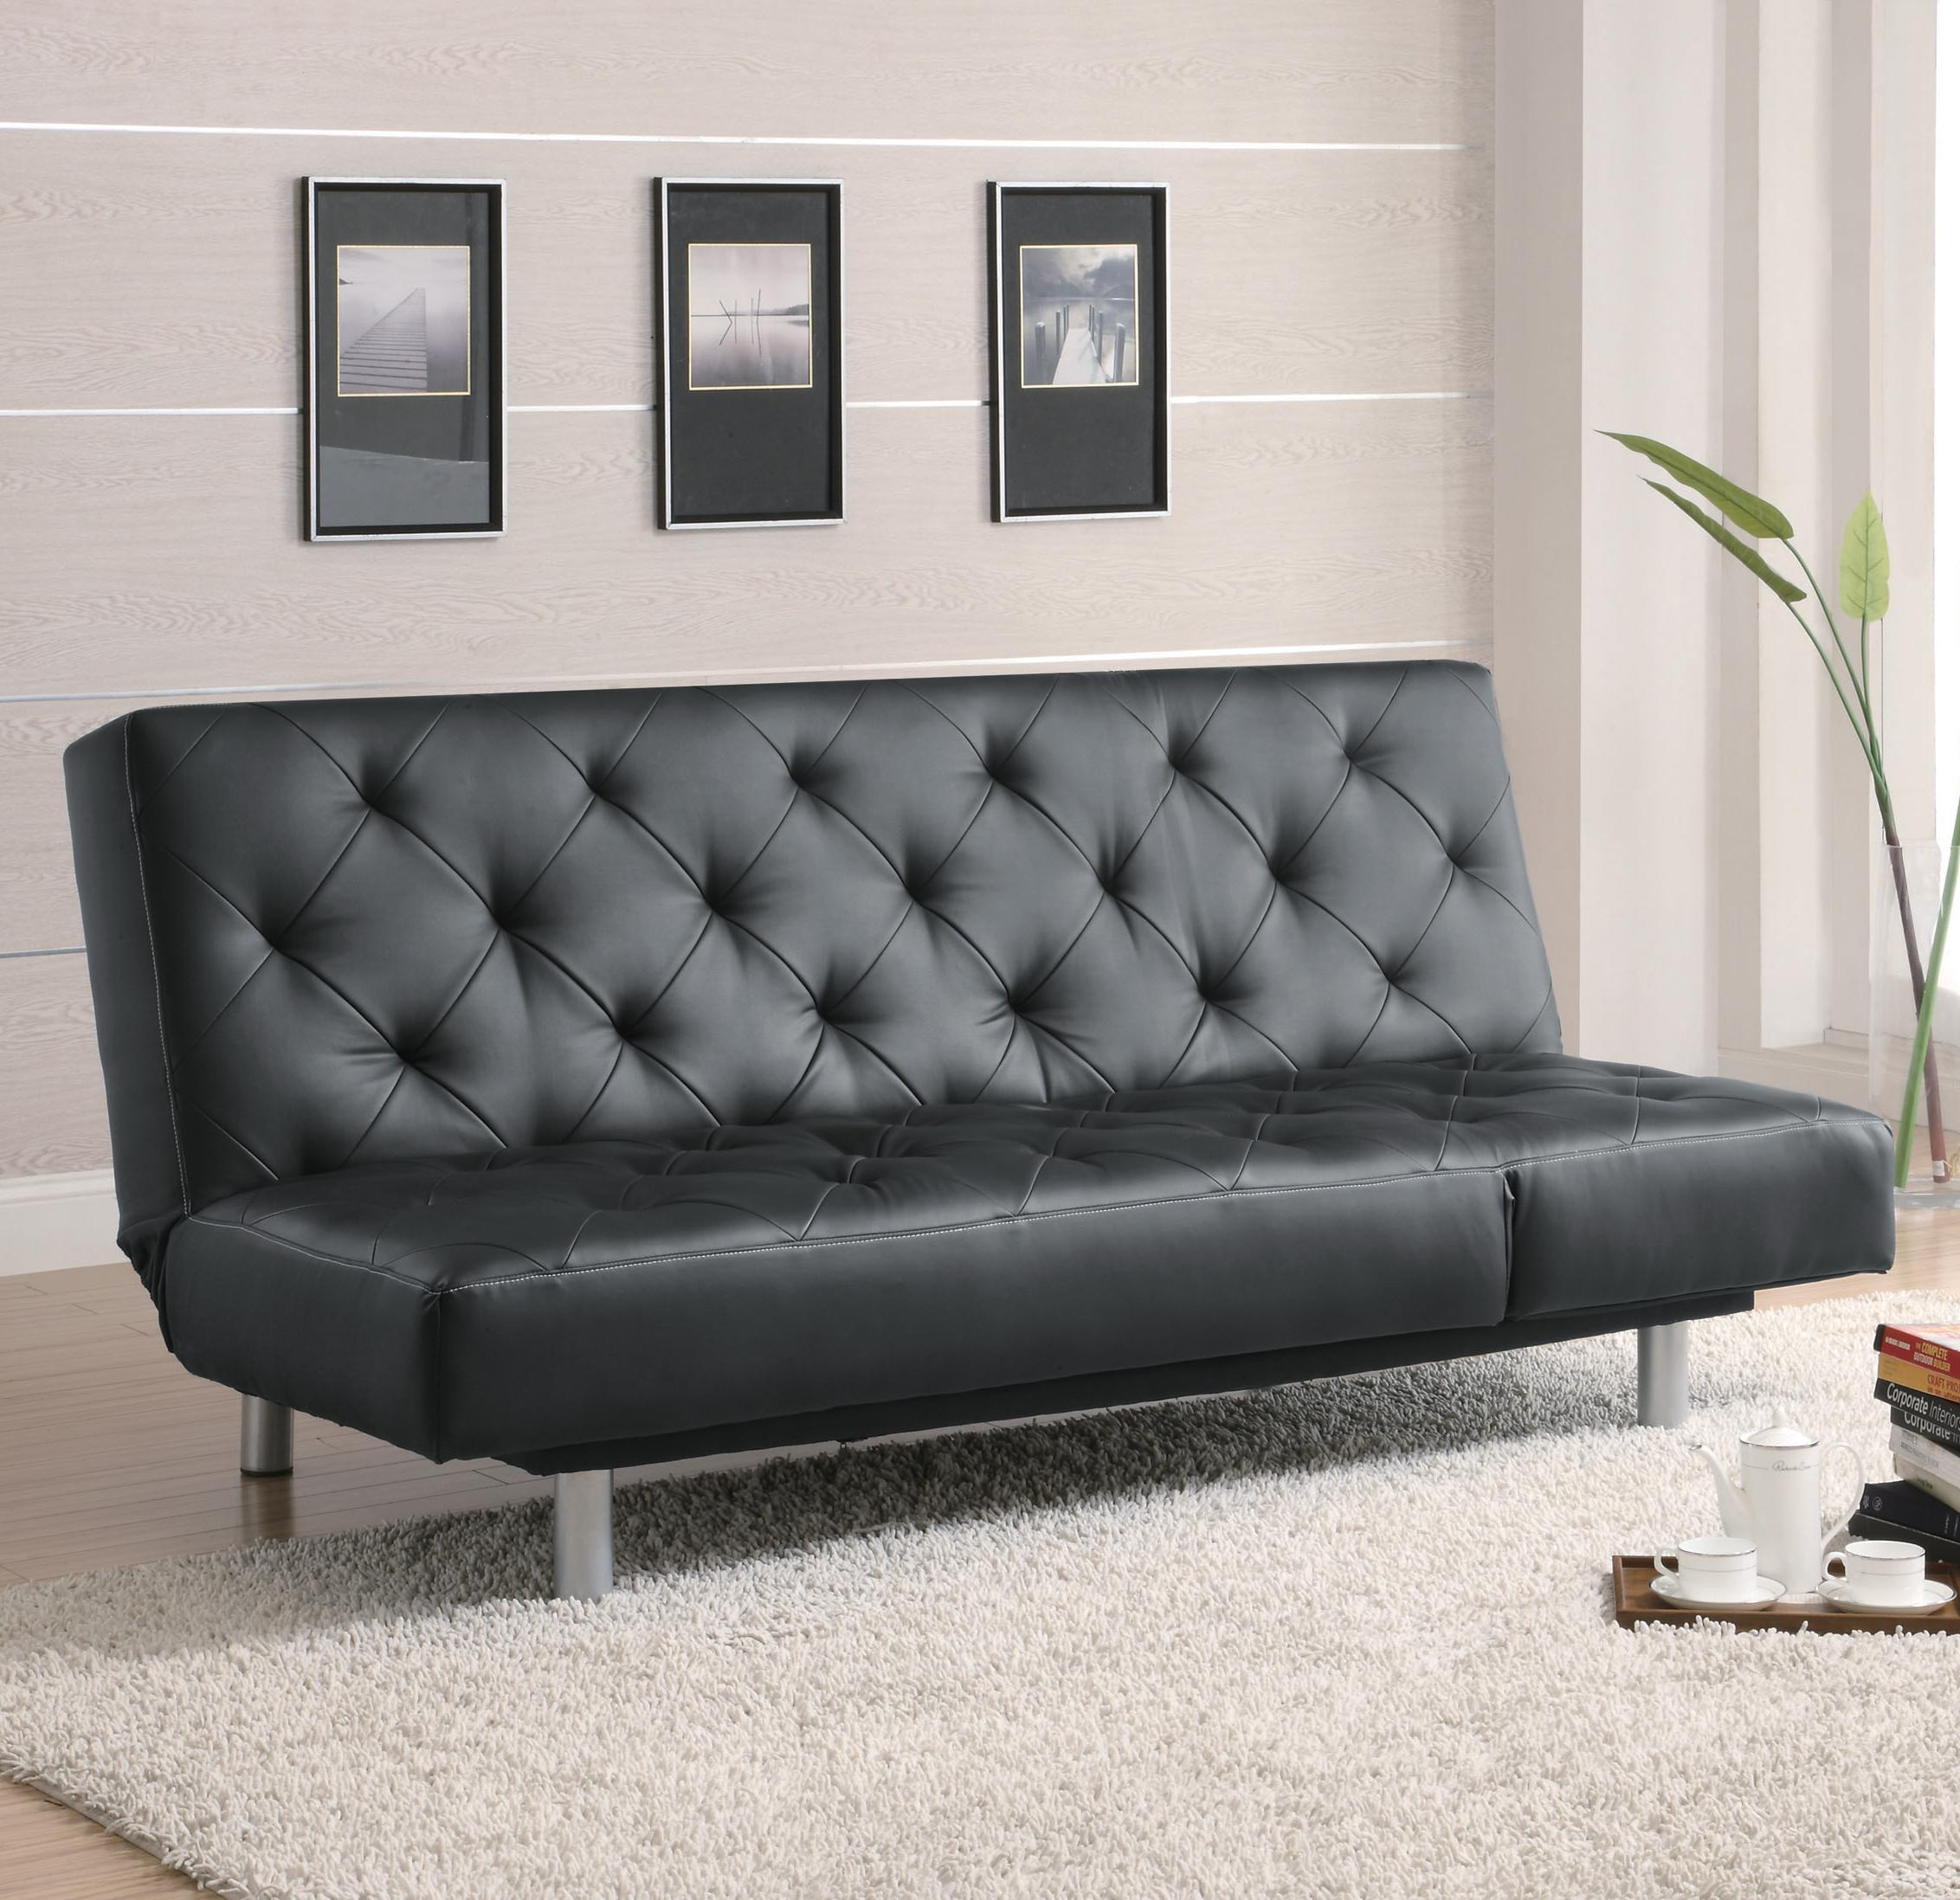 Coaster Sofa Beds and Futons -  Sofa Bed - Item Number: 300304